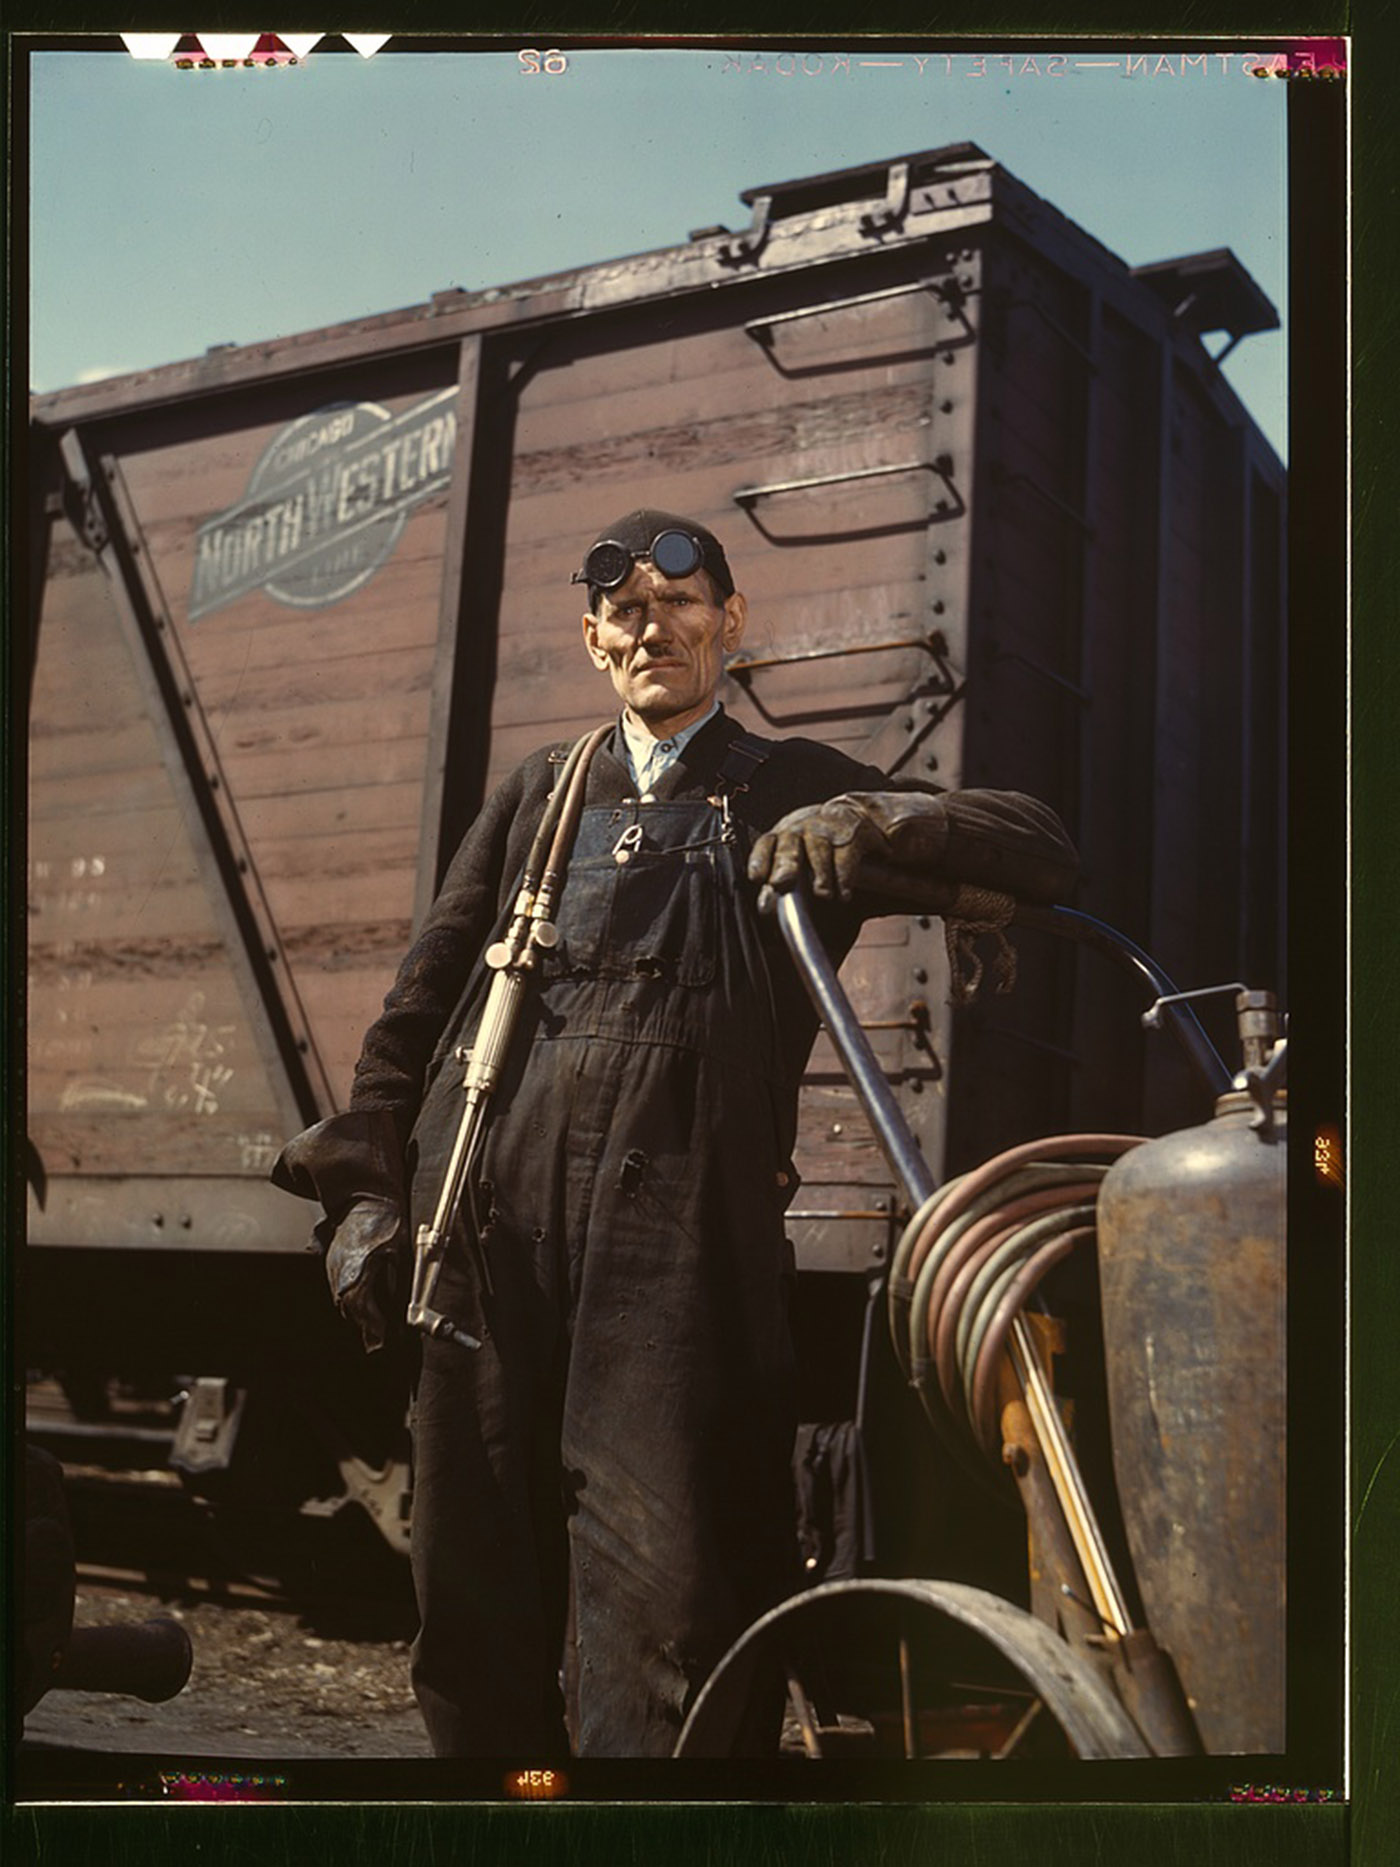 Mike Evans, a welder, at the rip tracks at Proviso yard of the C & NW RR, Chicago, Illinois, 1943. Mike Evans, a welder, at the rip tracks at Proviso yard of the C & NW RR, Chicago, Ill. Mike Evans, a welder, at the rip tracks at Proviso yard of the C & NW RR, Chicago, Ill. Jack Delano, Farm Security Administration/Office of War Information